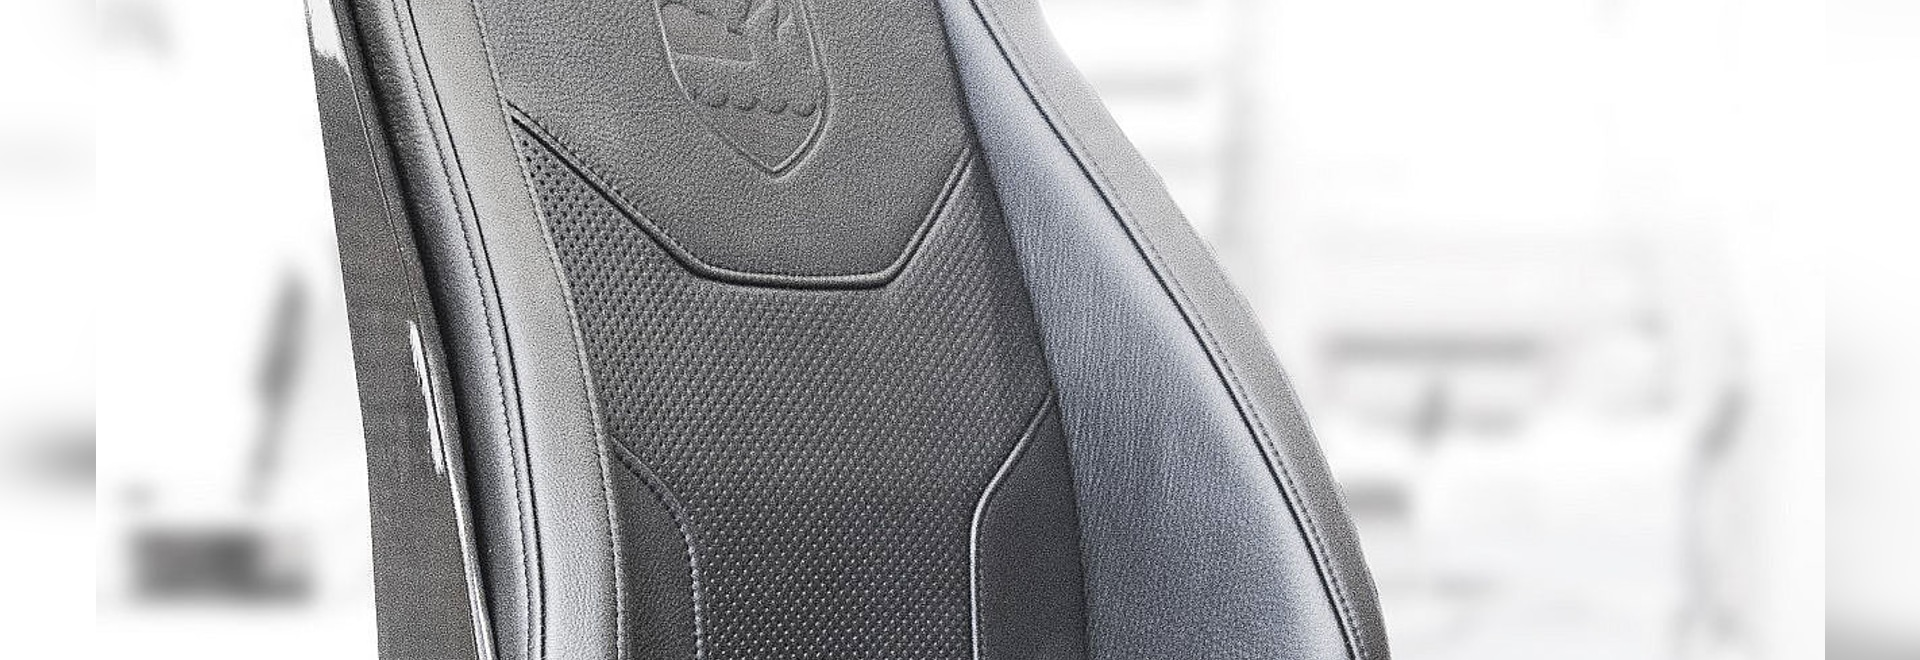 Ullman To Pre Launch New Echelon Seat at Professional Event.